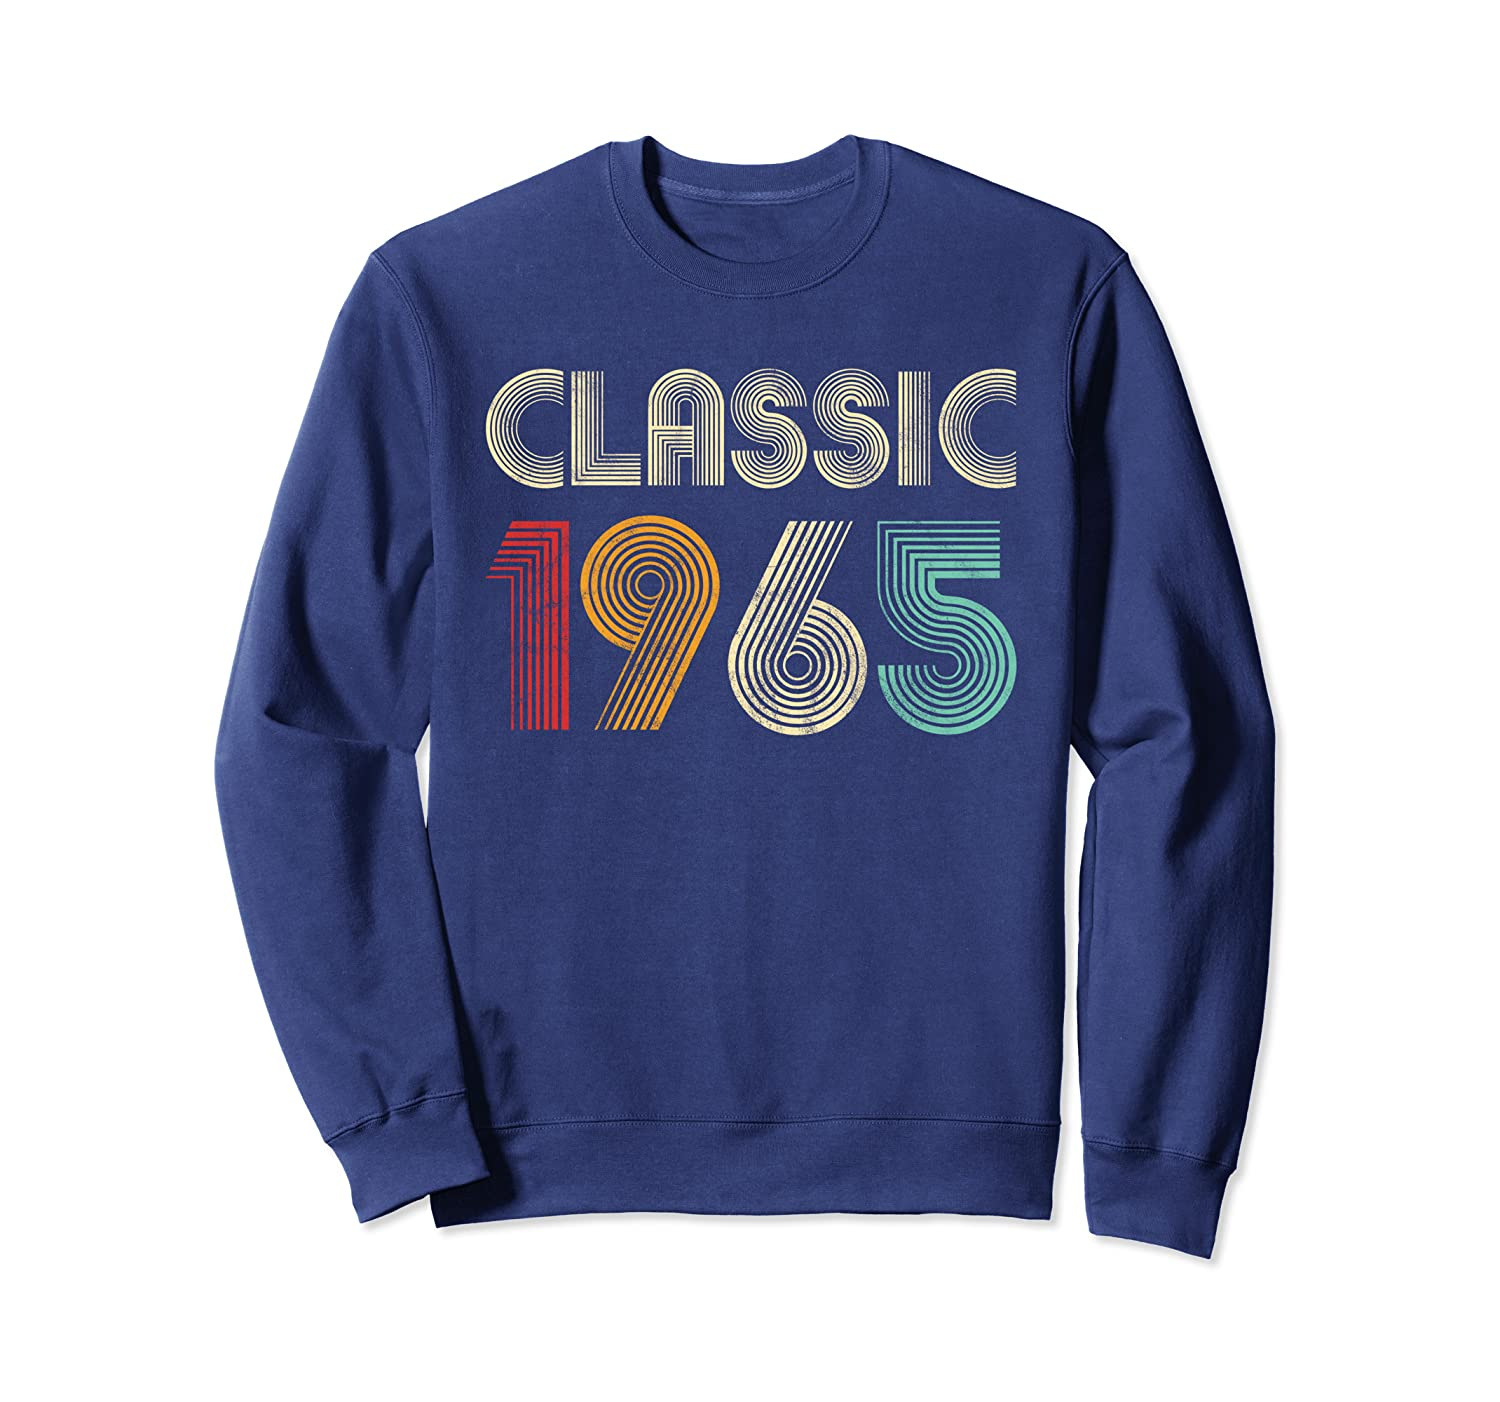 Classic 1965 Vintage 55th Birthday Gift Men Women Sweatshirt